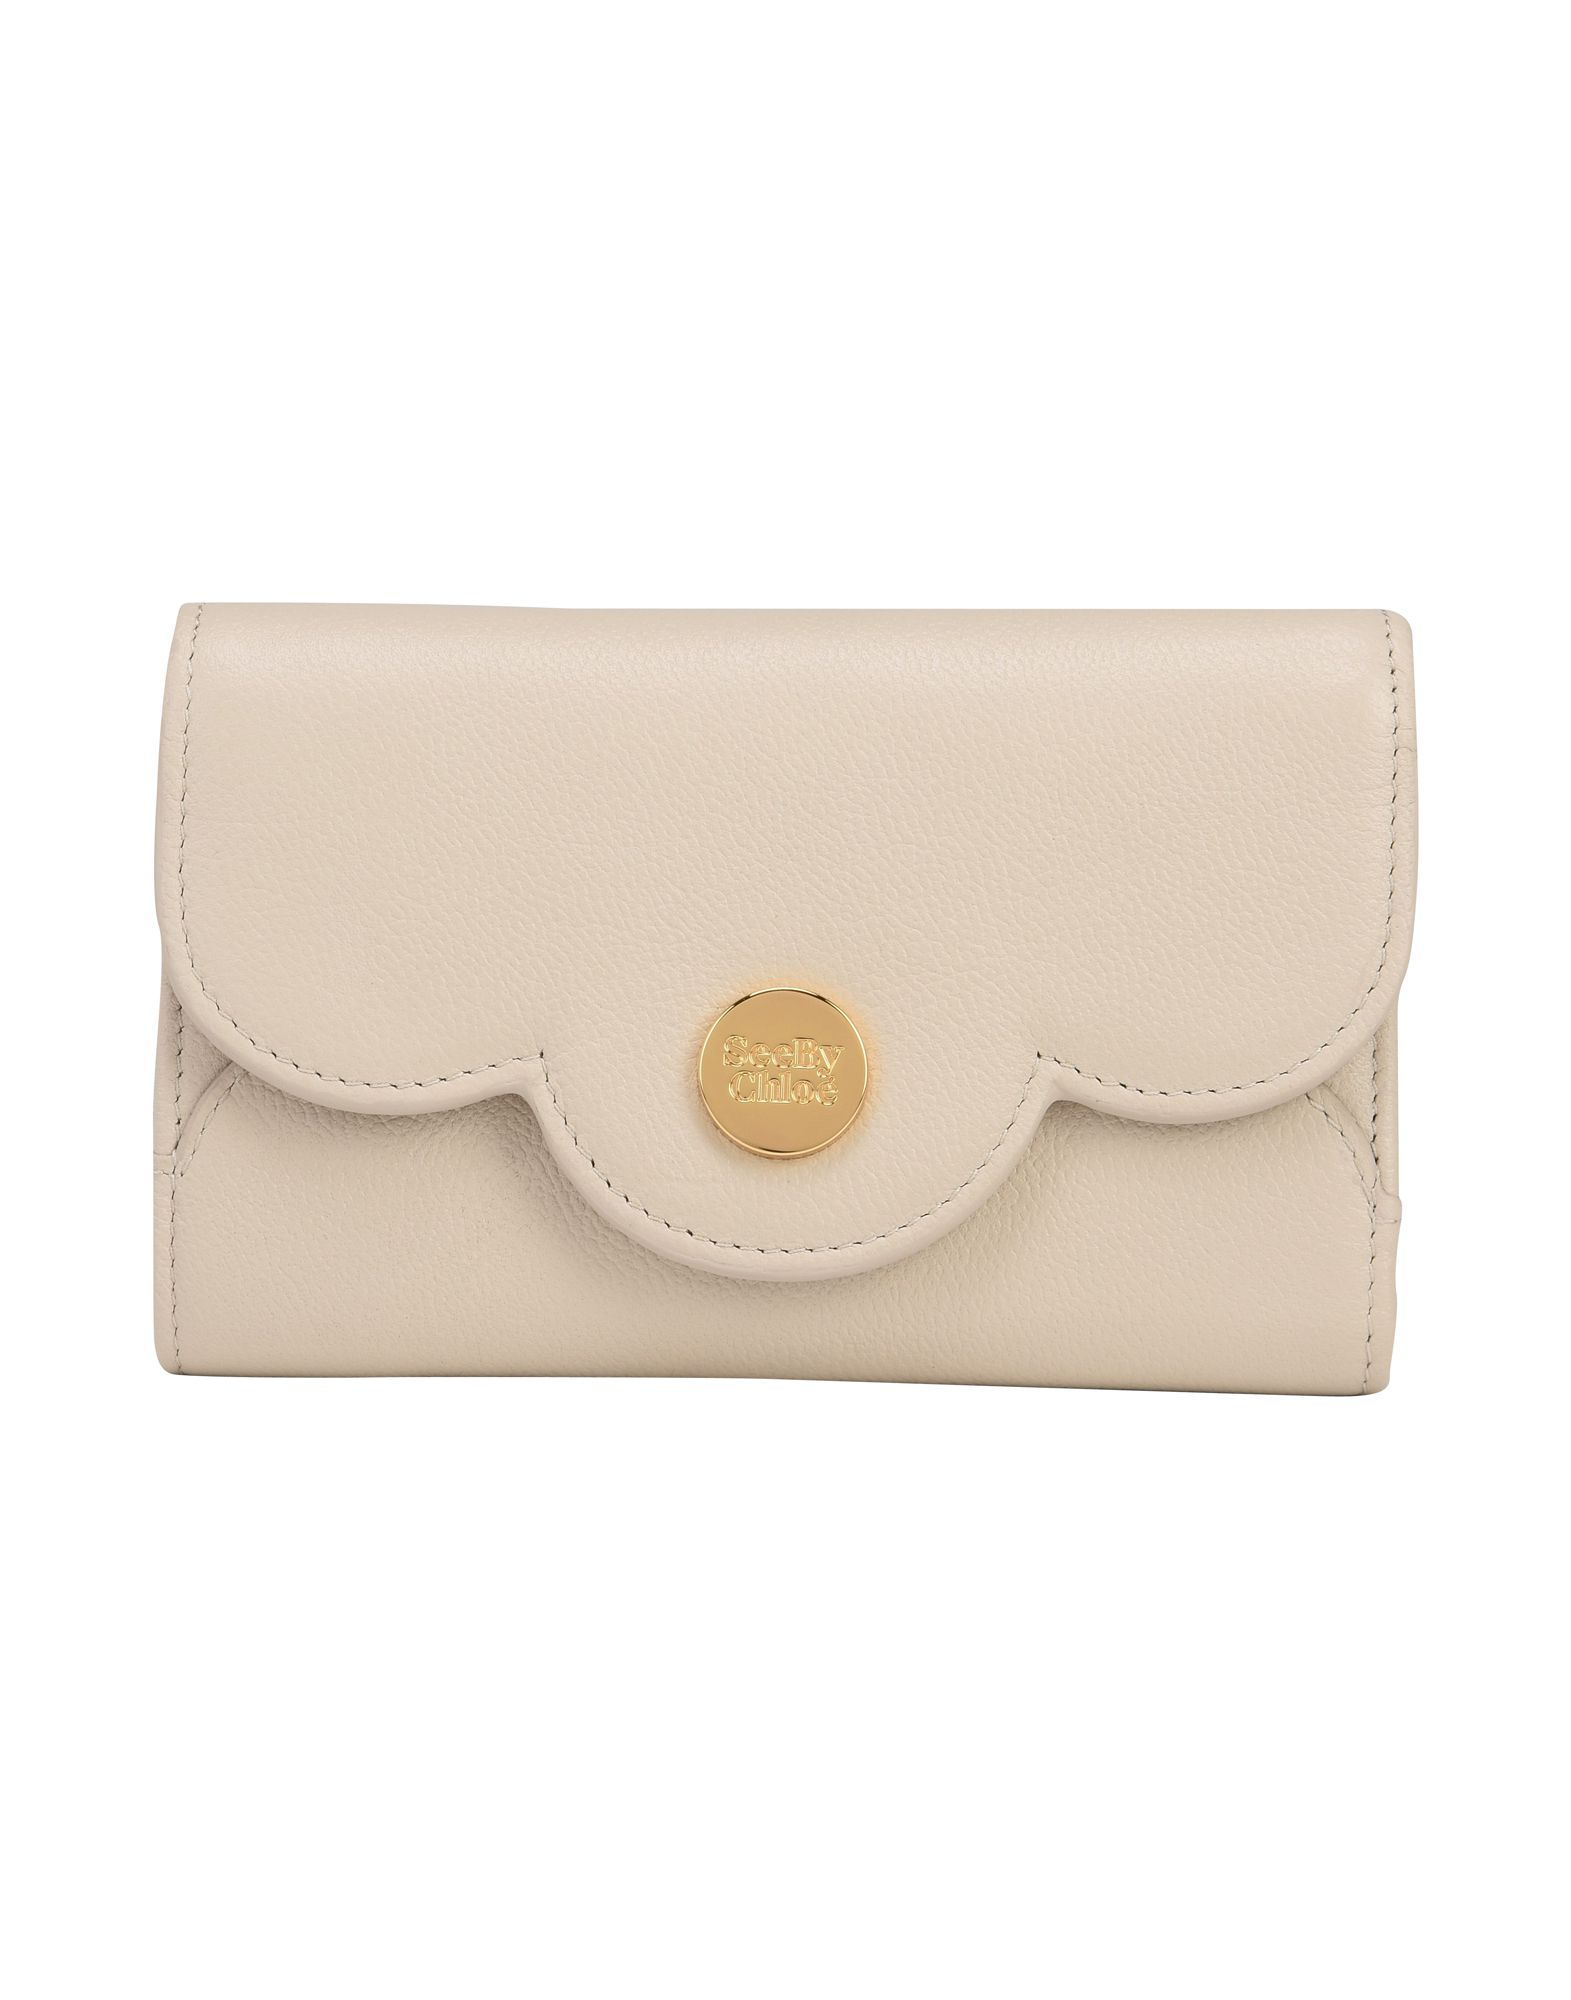 562b5ac75c Portafoglio See By Chloé Polina Small Medium Wallet - Donna - Acquista  online su YOOX - 46576732